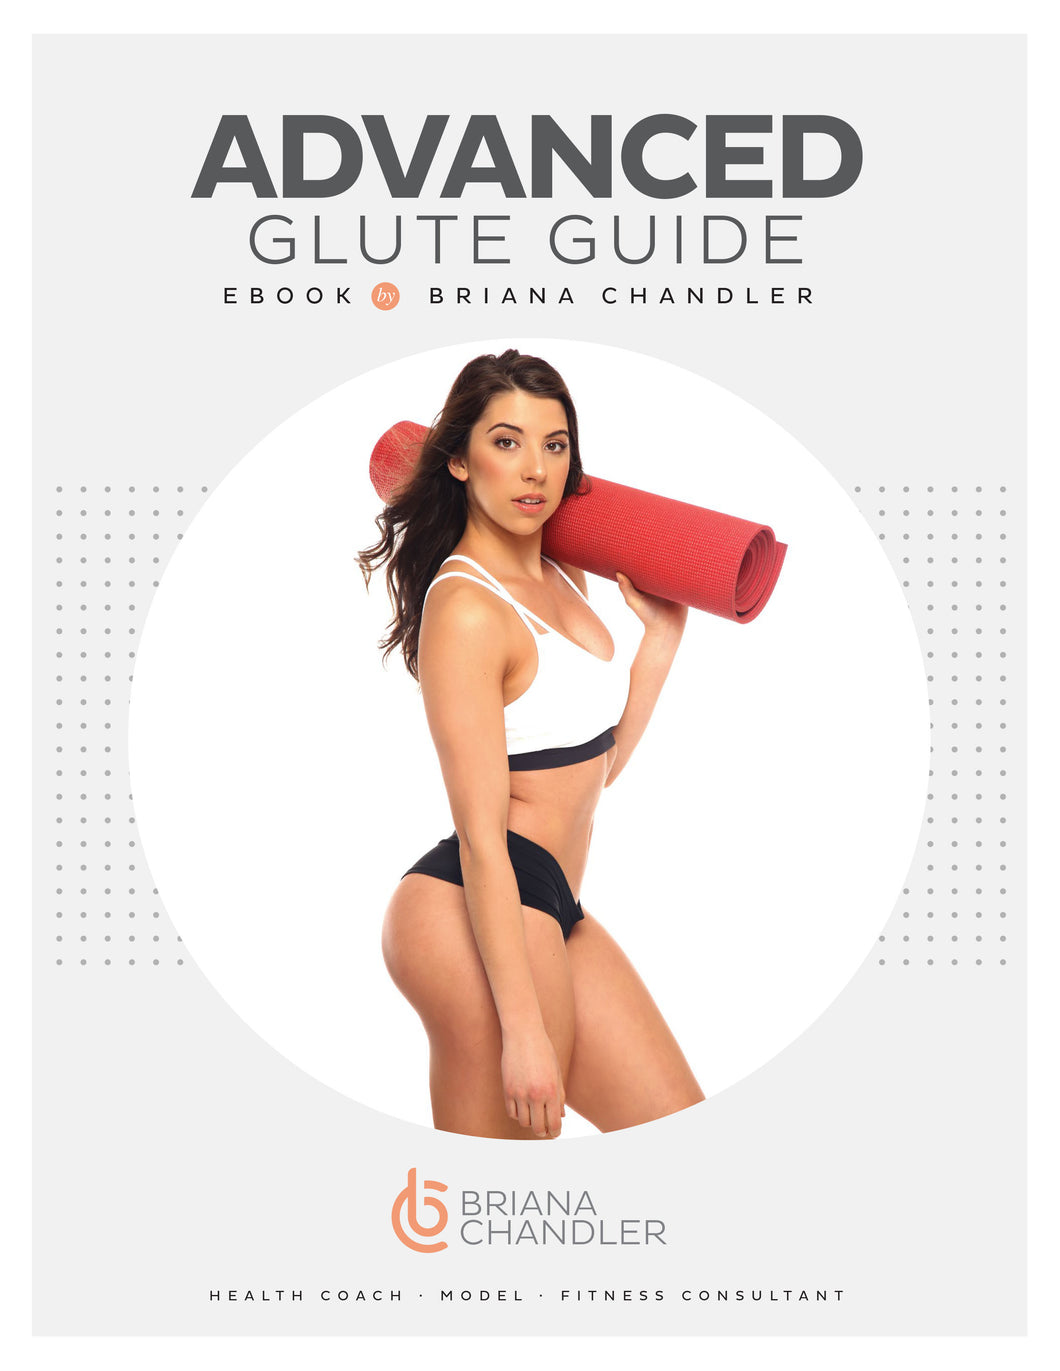 12 WEEKS ADVANCED GLUTE GUIDE - includes HEALTHY EATS